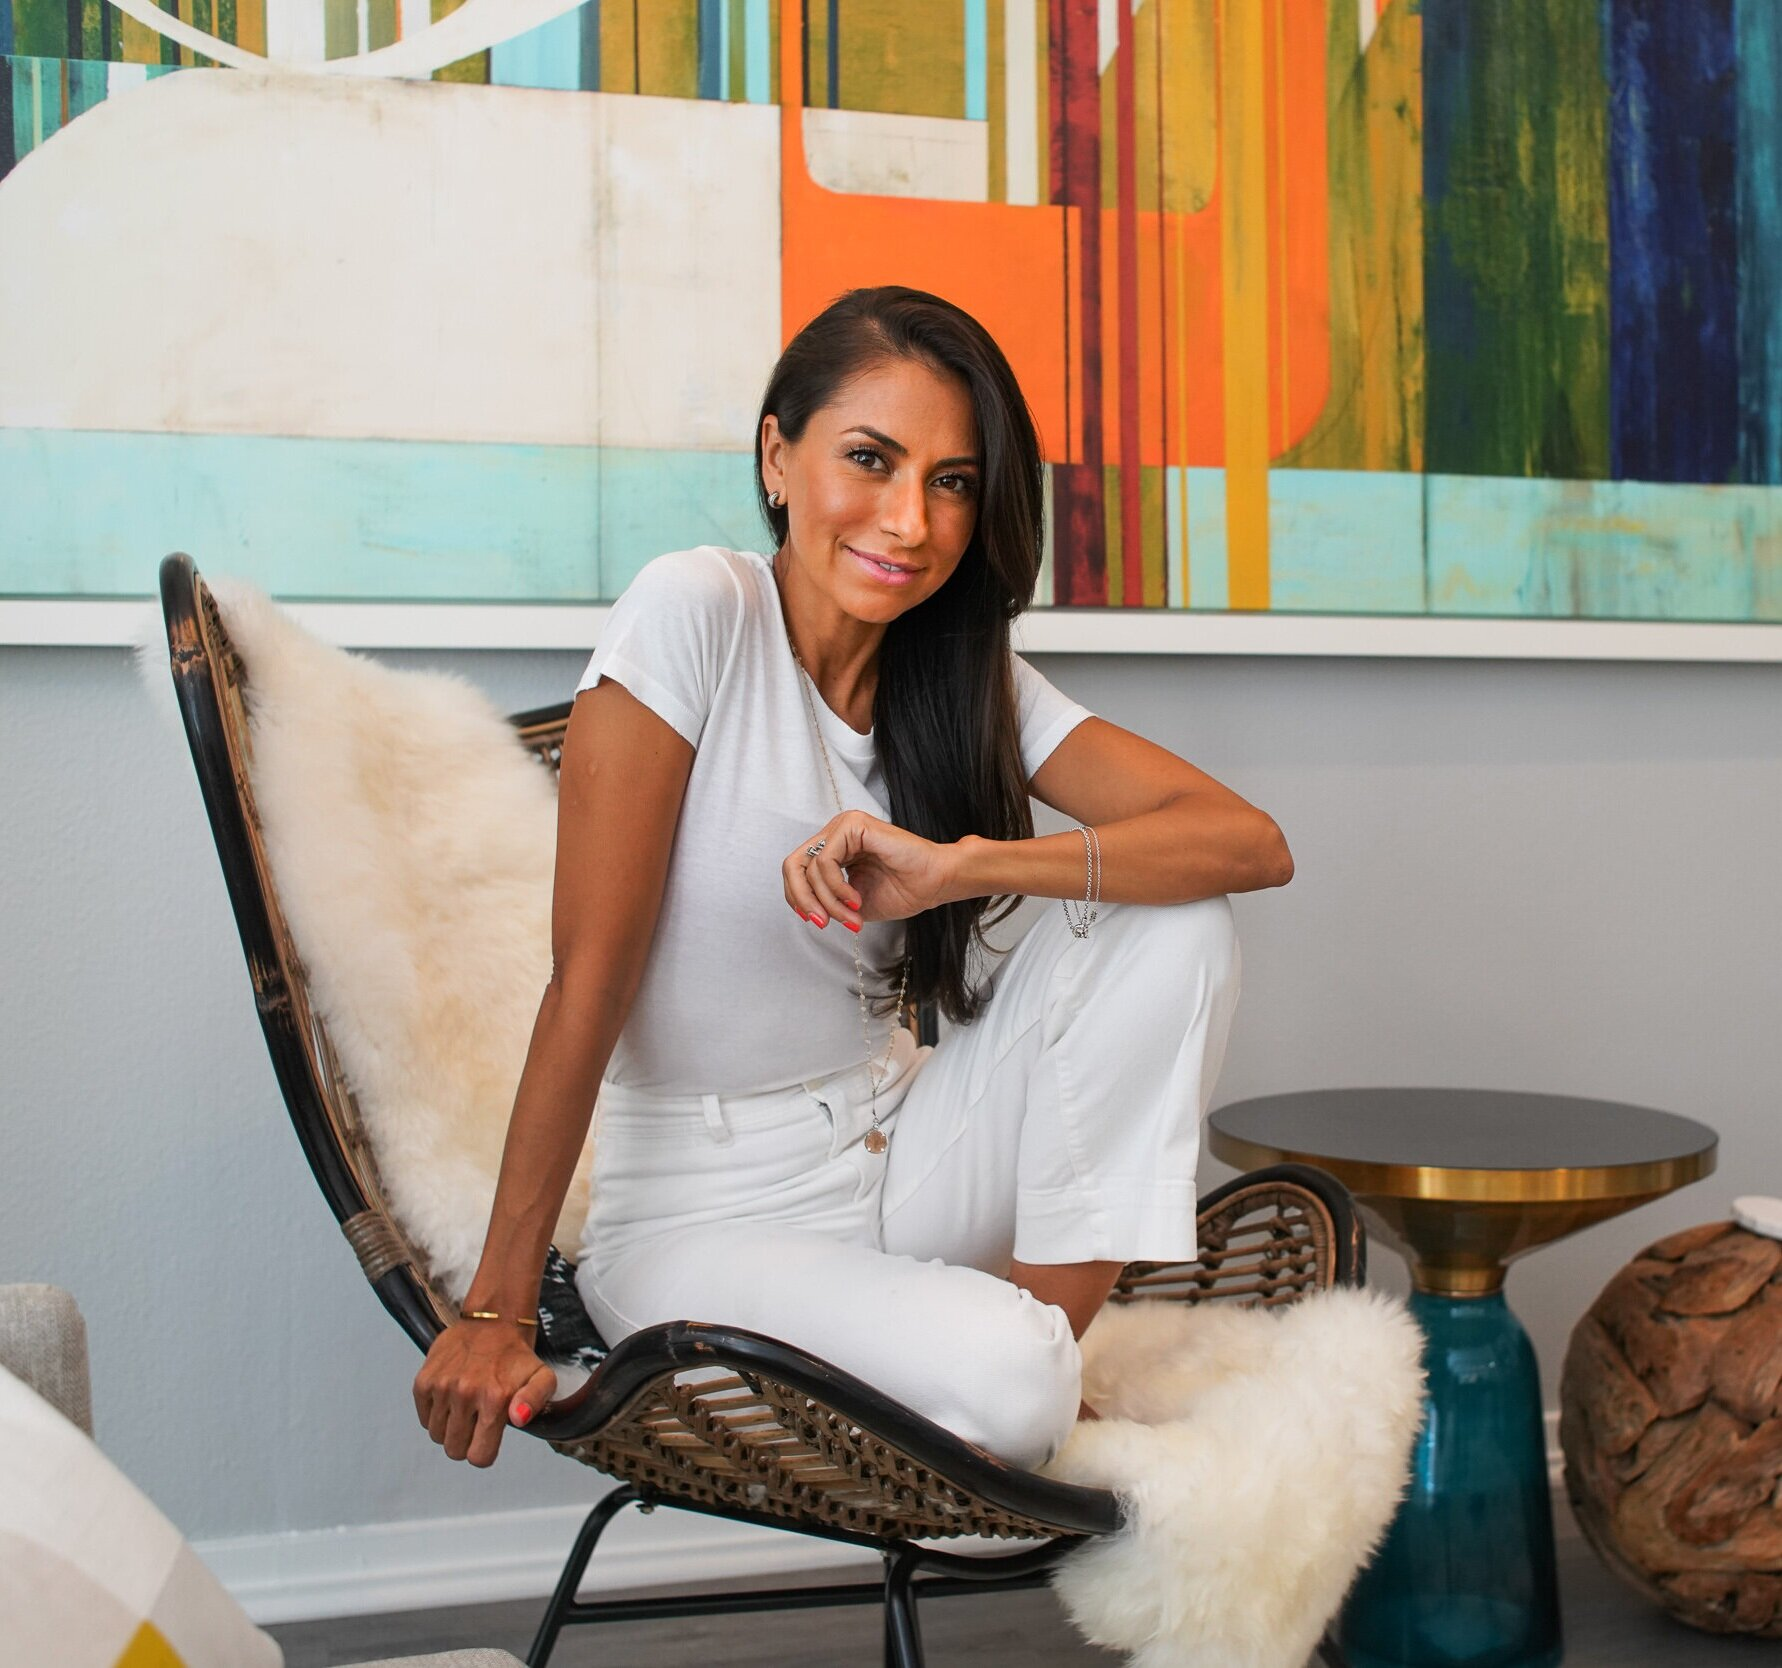 About Me - Mona Sharma is a dynamic leader and entrepreneur in the health and wellness industry, as well as a celebrity wellness educator, who works with high profile clients all around the world. She recently has a reoccurring role on the Facebook series Red Table Talk, where they profiled her health and wellness work with Will Smith and the entire Smith family. She is also a Holistic Nutritionist, mind/body coach, and founder and of Xicama™ an innovative line of functional food and beverage products, that deliver the gut and immune boosting benefits of the superfood, Jicama, and were an official functional cocktail mix at Coachella 2019.Now living in Los Angeles, and working with clients around the world, growing up, Mona spent summers living on an Ashram, learning the power of food as medicine, yoga, and meditation to heal the body. Today these are the pillars of Mona's philosophy, helping her clients achieve their goals for long term optimal health and excellence. She believes in functional nutrition as medicine, breath and movement as therapy, and meditation as mind re-conditioning, ridding the effects of learned behavior, stress, and inflammation of the body. Mona awakens the health, mindset, and lifestyle that allow her clients to thrive, achieve their goals, while developing sustainable habits with fun and ease.